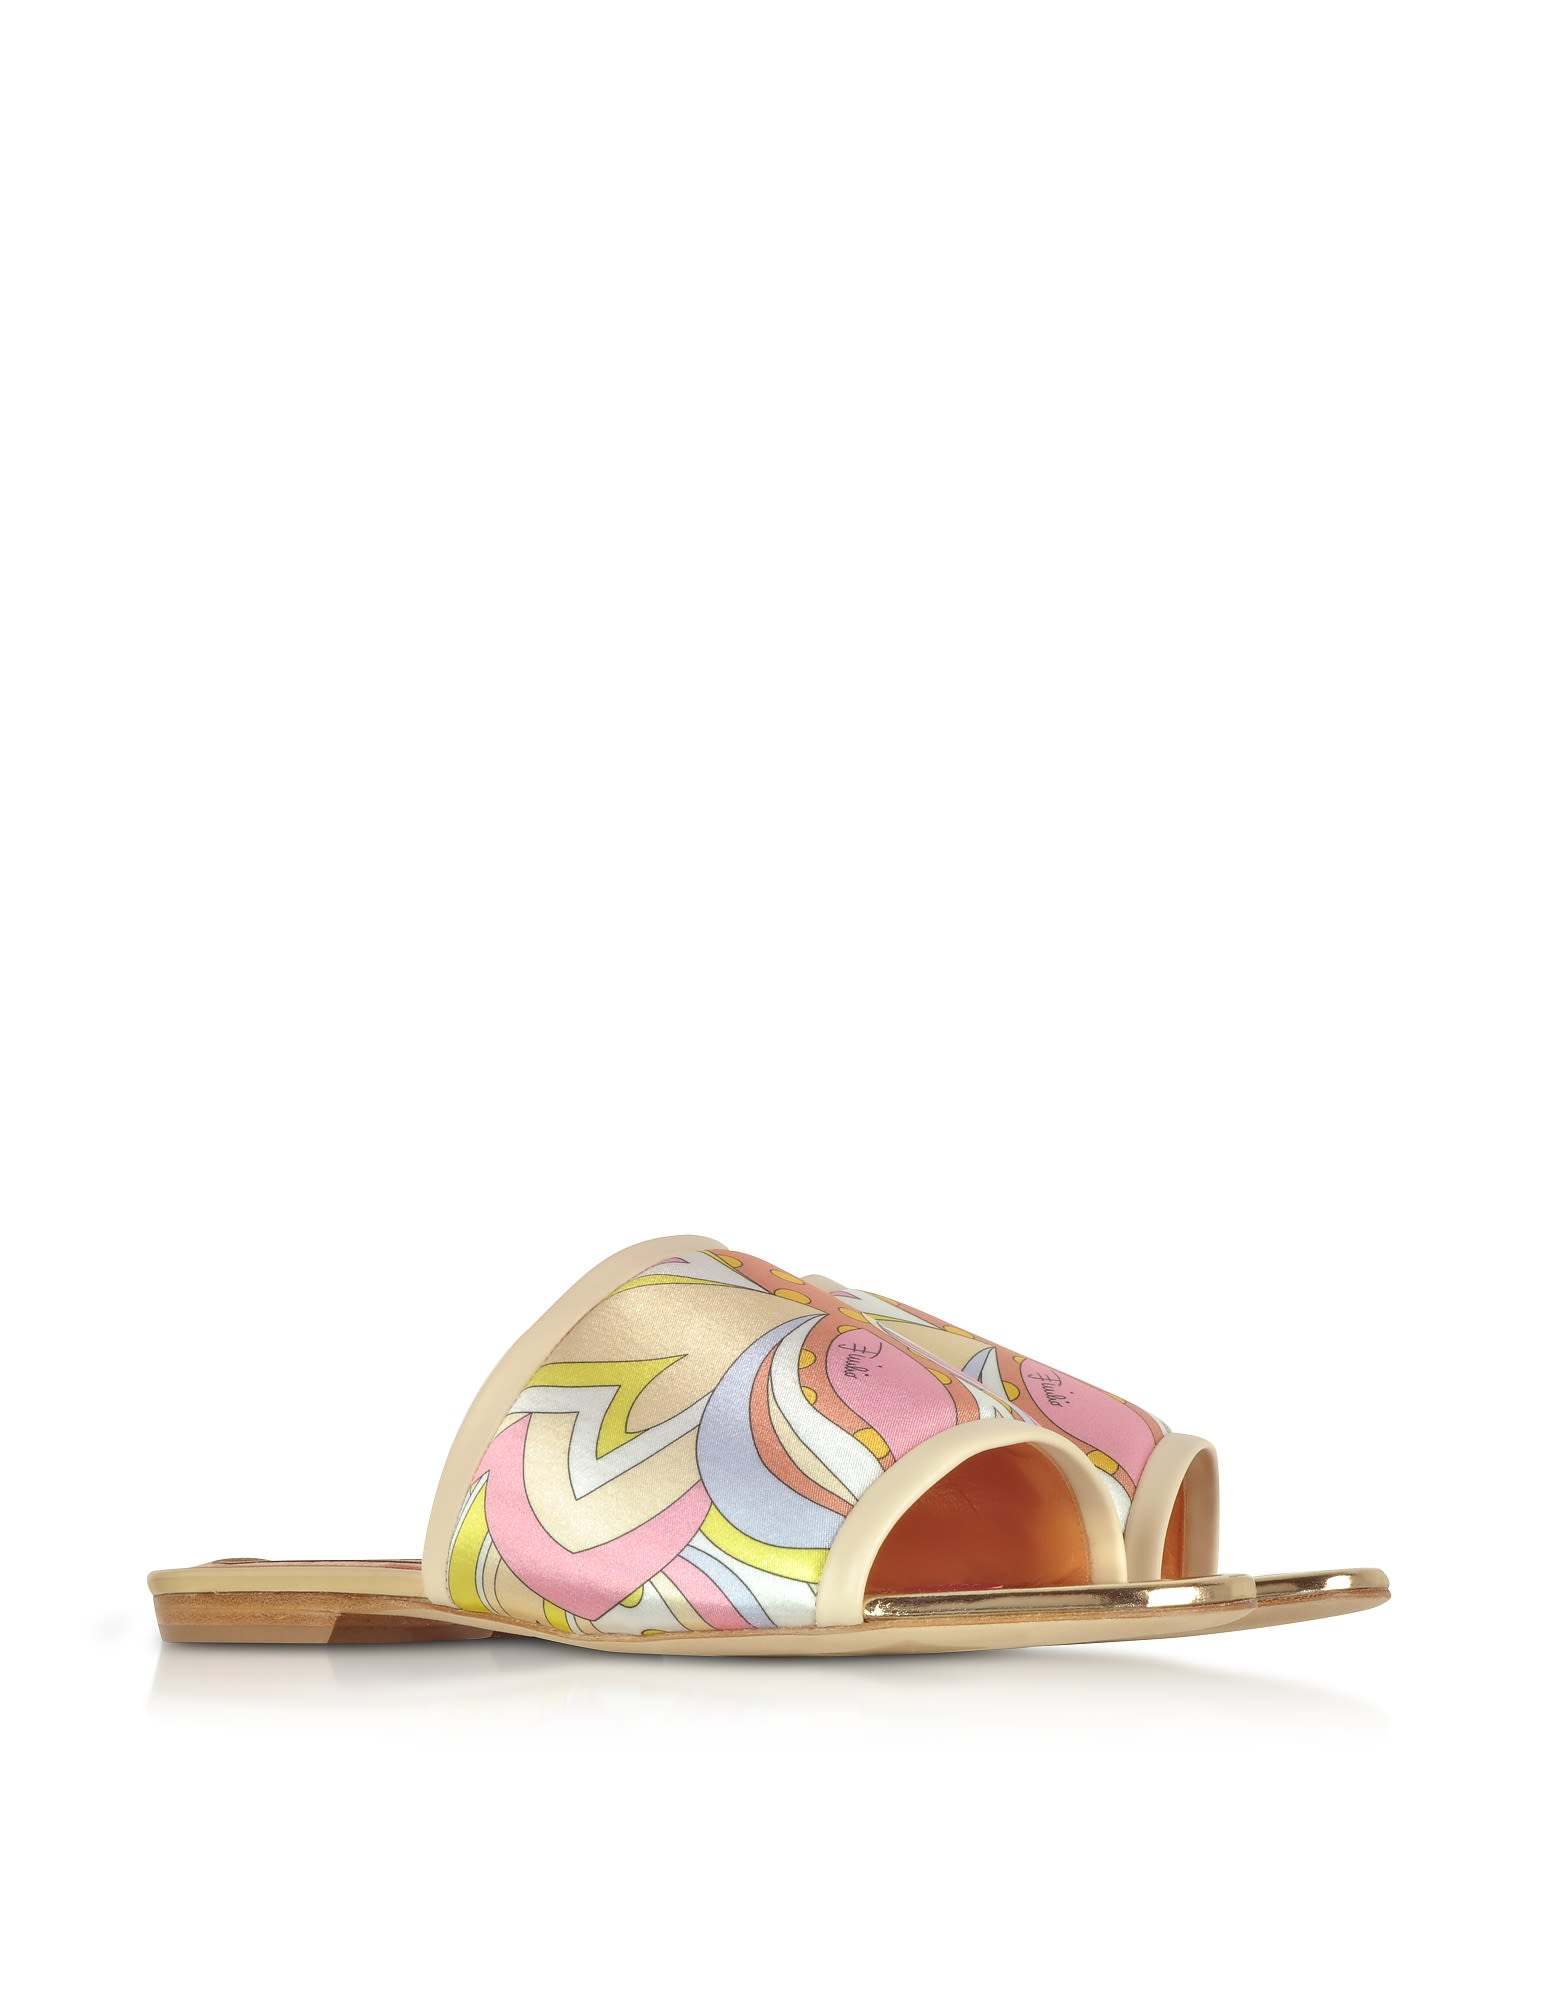 Emilio Pucci Designer Shoes, Printed Canvas and Leather Flat Slide Sandals